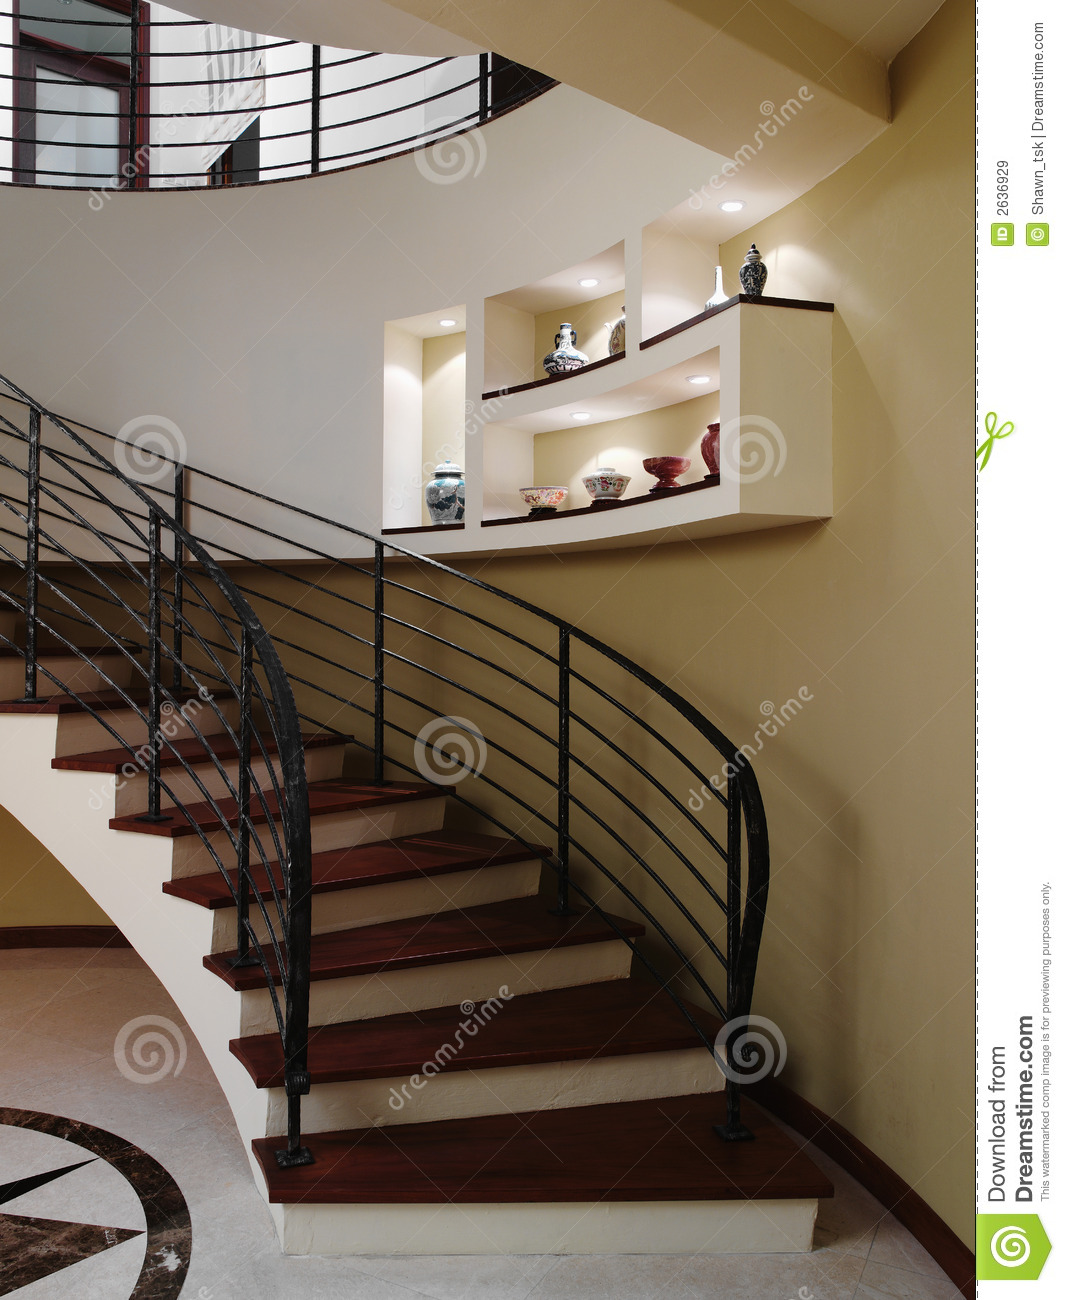 Interior Design - Stairs Royalty Free Stock Images - Image: 2636929